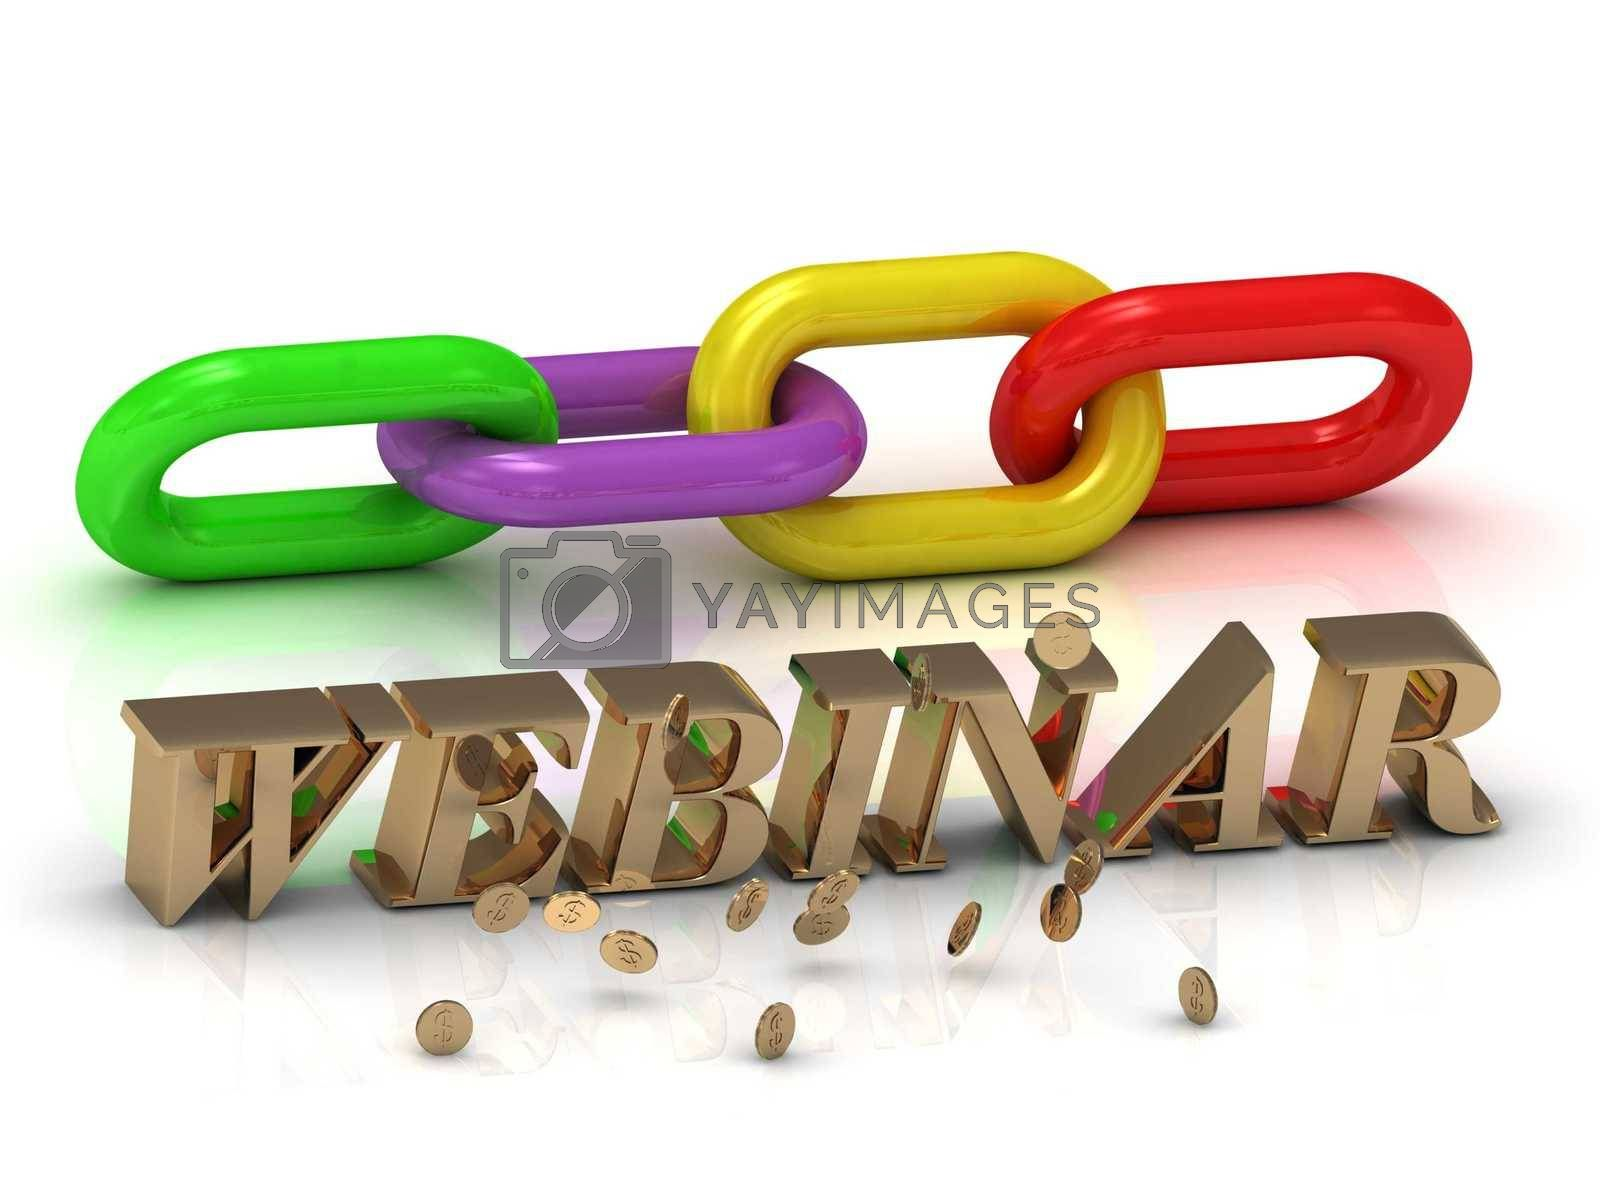 WEBINAR- inscription of bright letters and color chain on white background